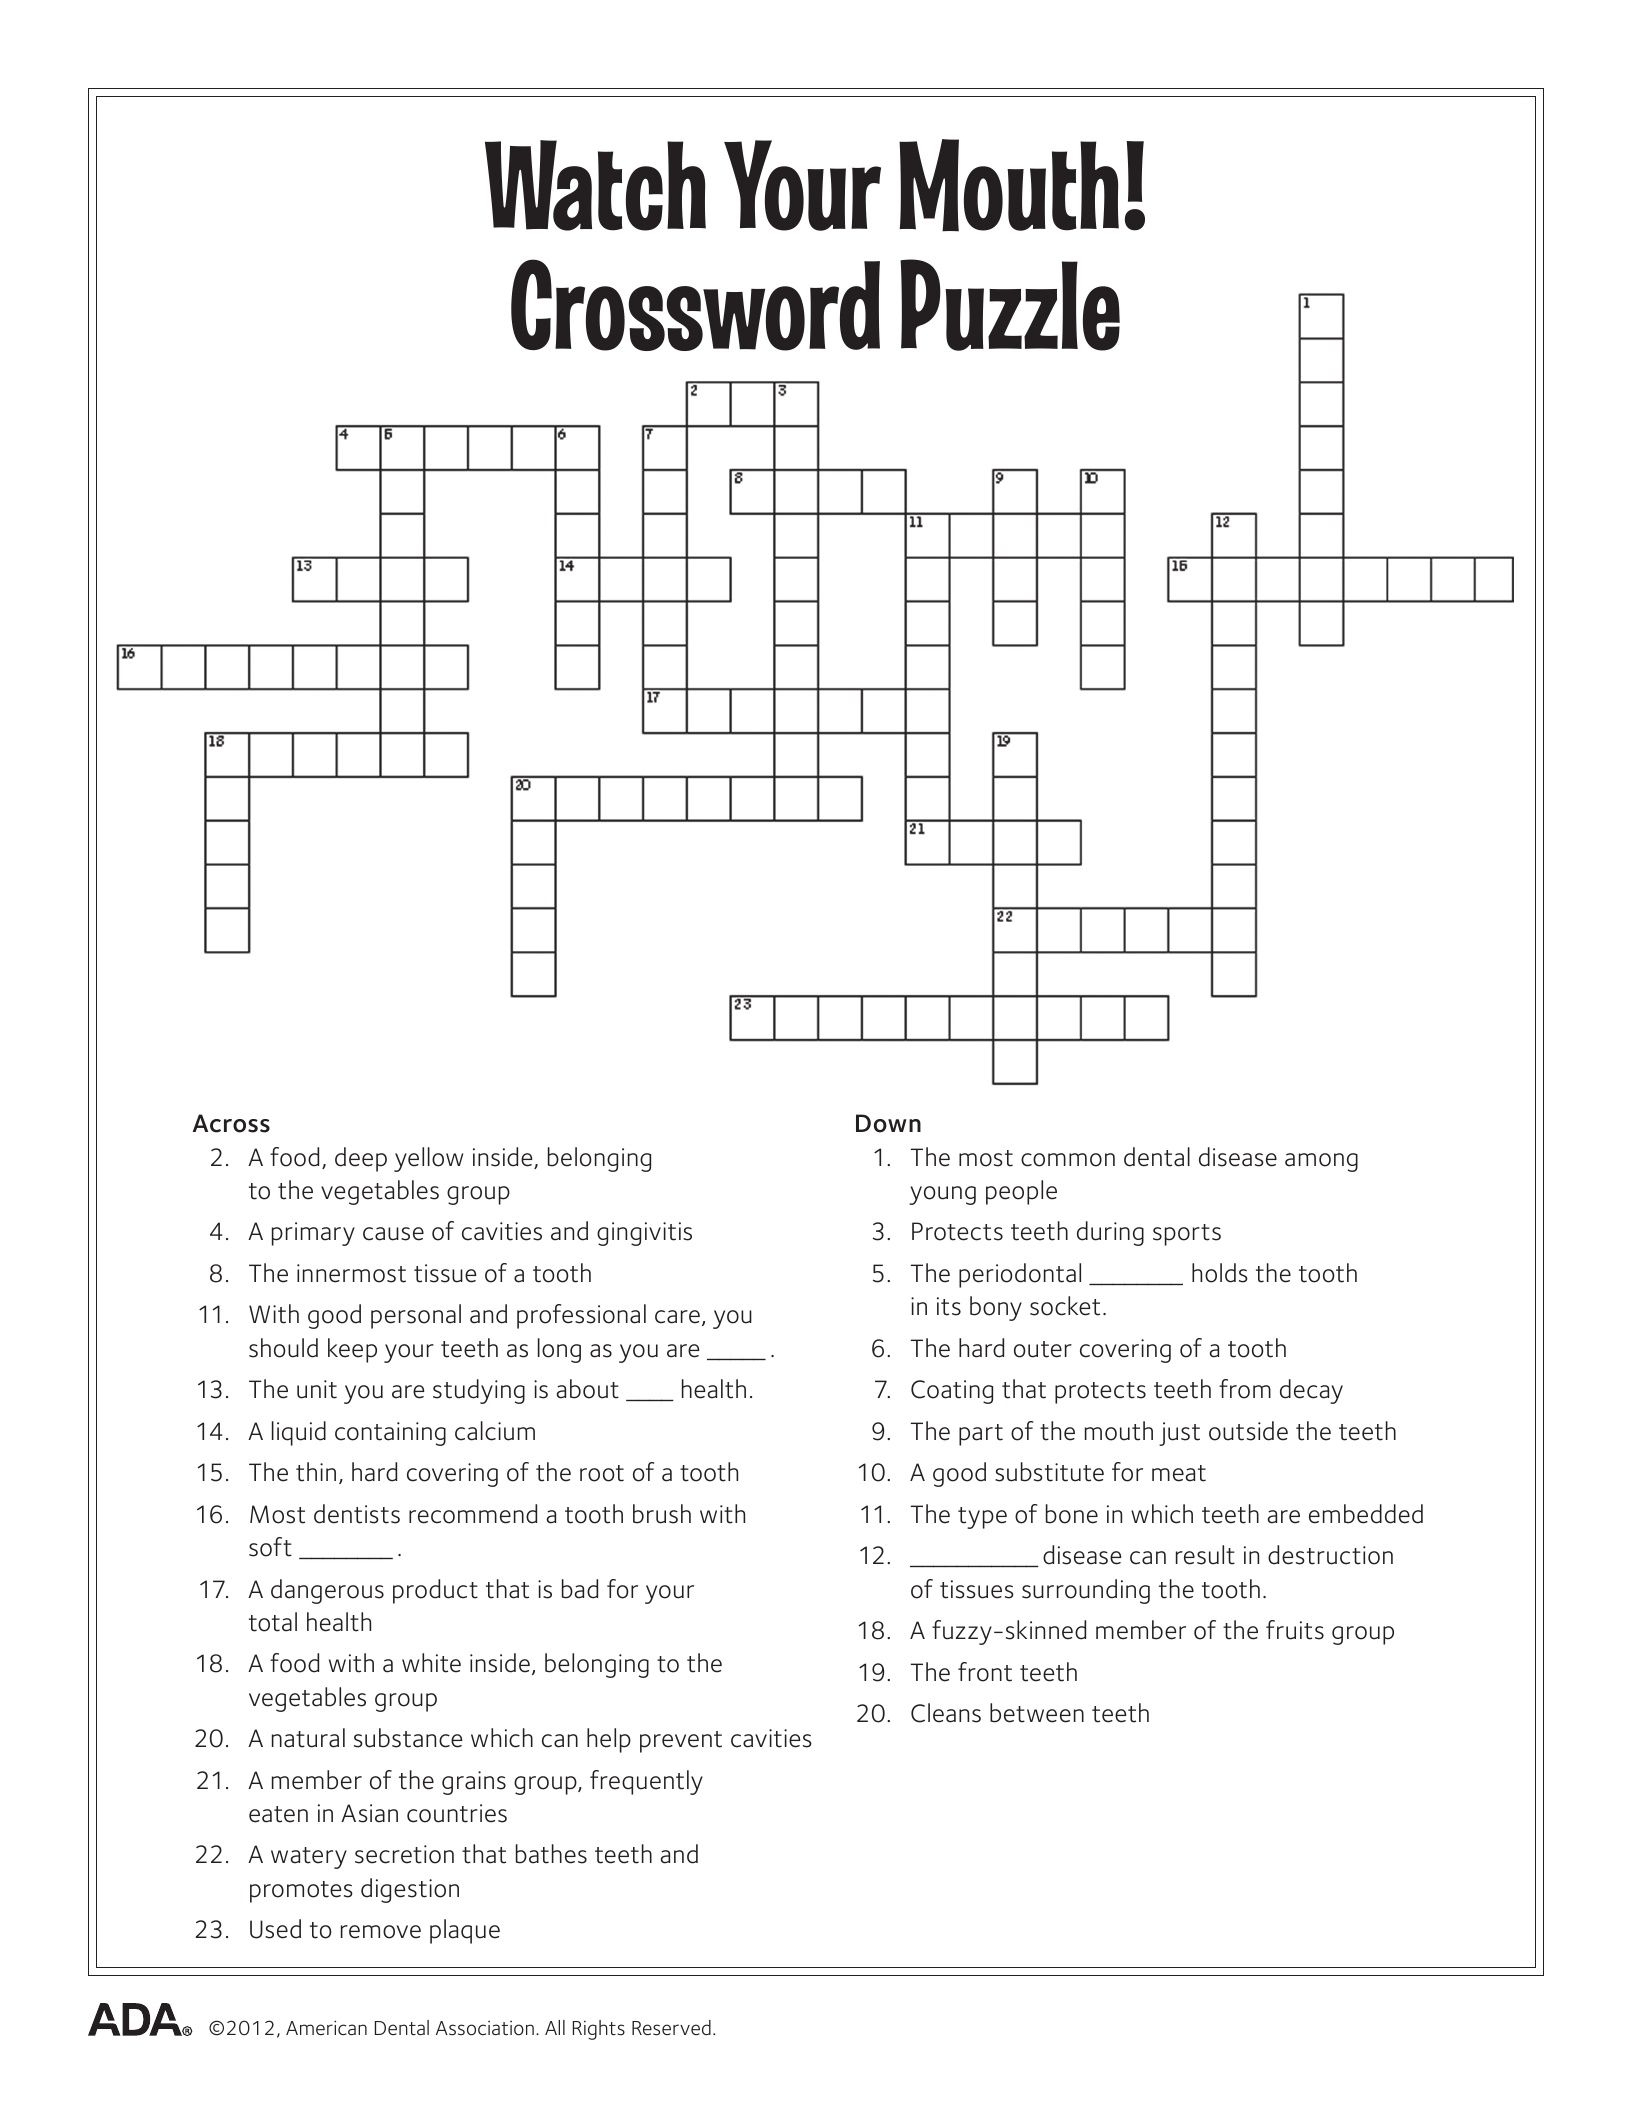 11 Dental Health Activities Puzzle Fun (Printable) | Dental Hygiene - Free Printable Crossword Puzzles Health